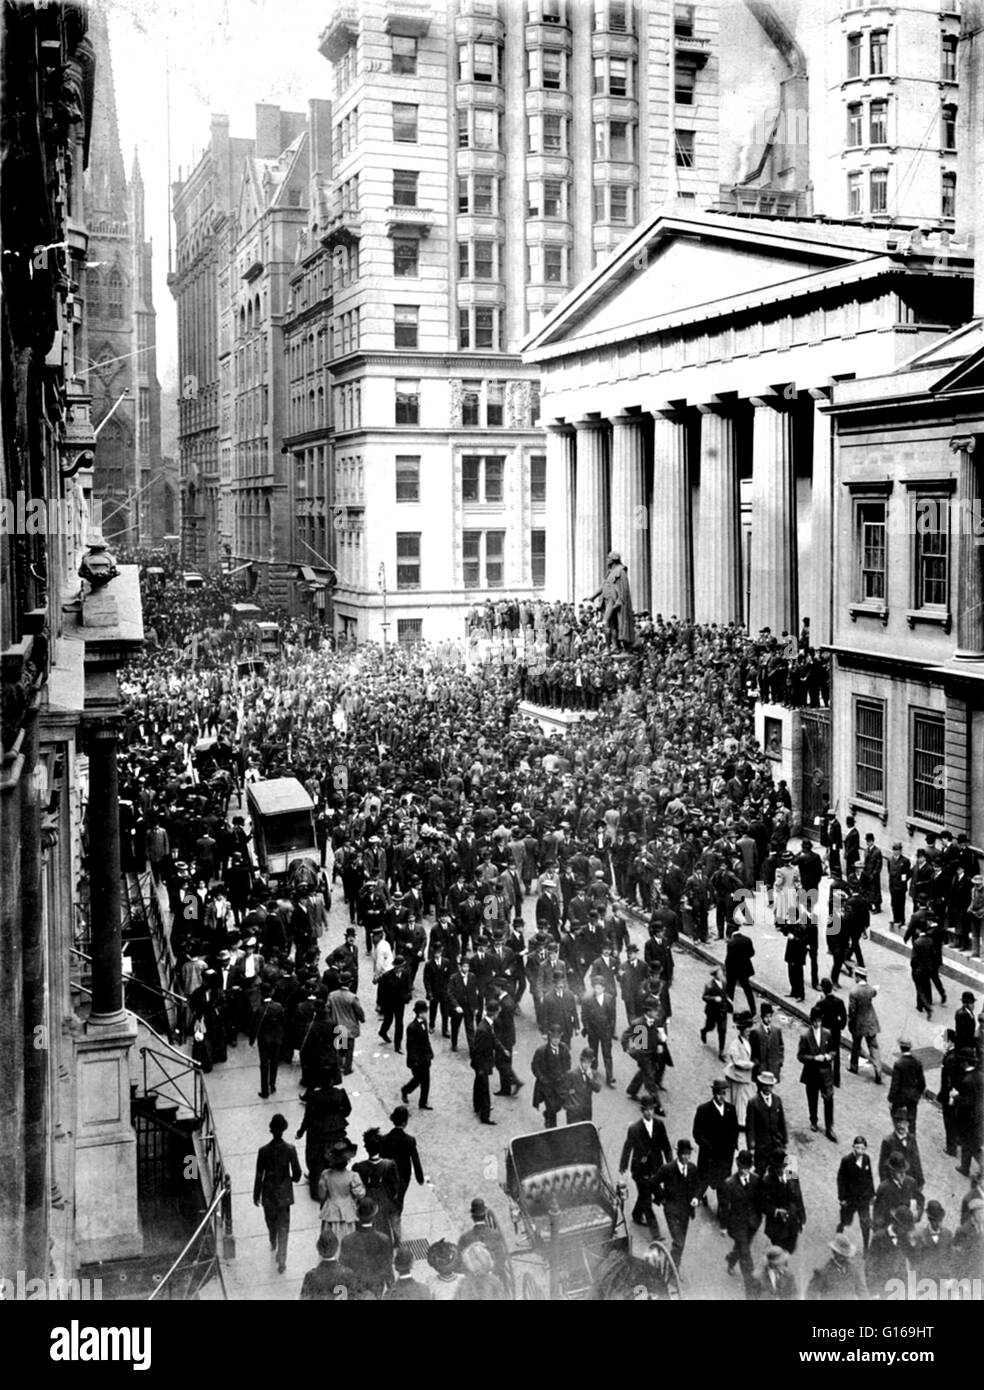 The Panic of 1907 was a financial crisis that occurred when the New York Stock Exchange fell almost 50% from its - Stock Image